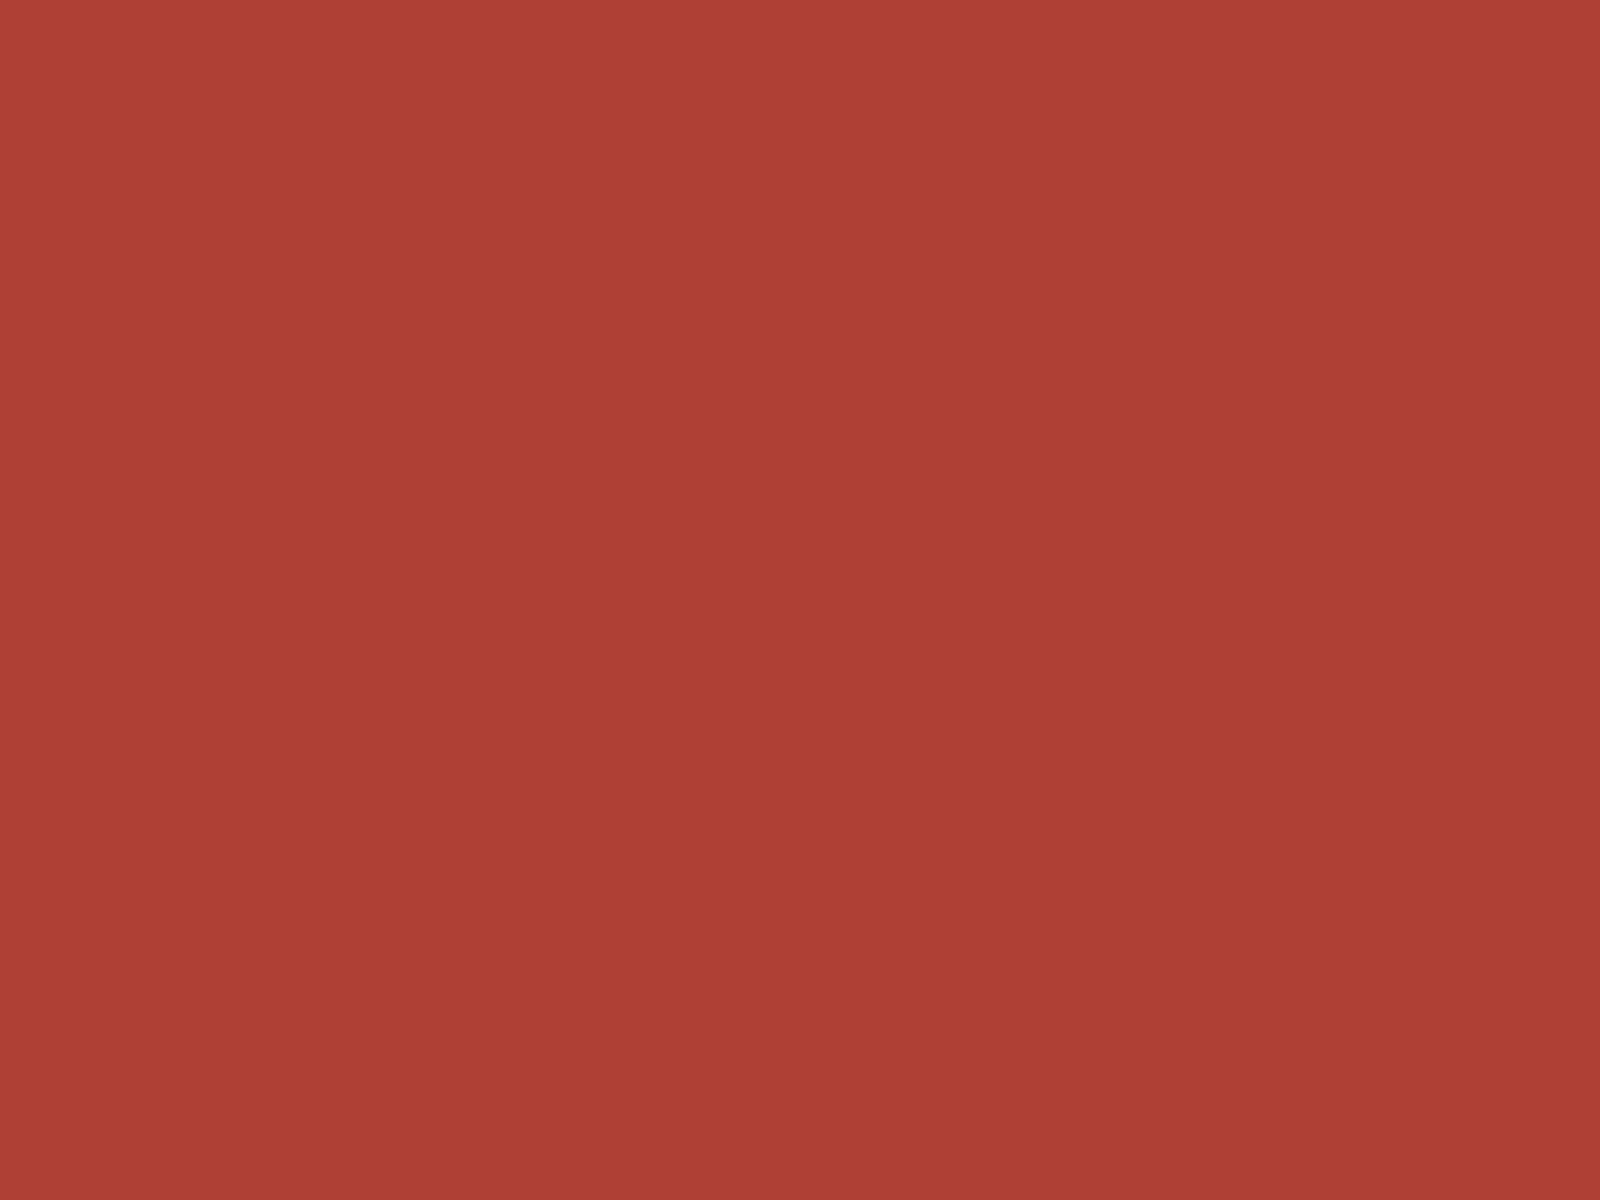 1600x1200 Medium Carmine Solid Color Background